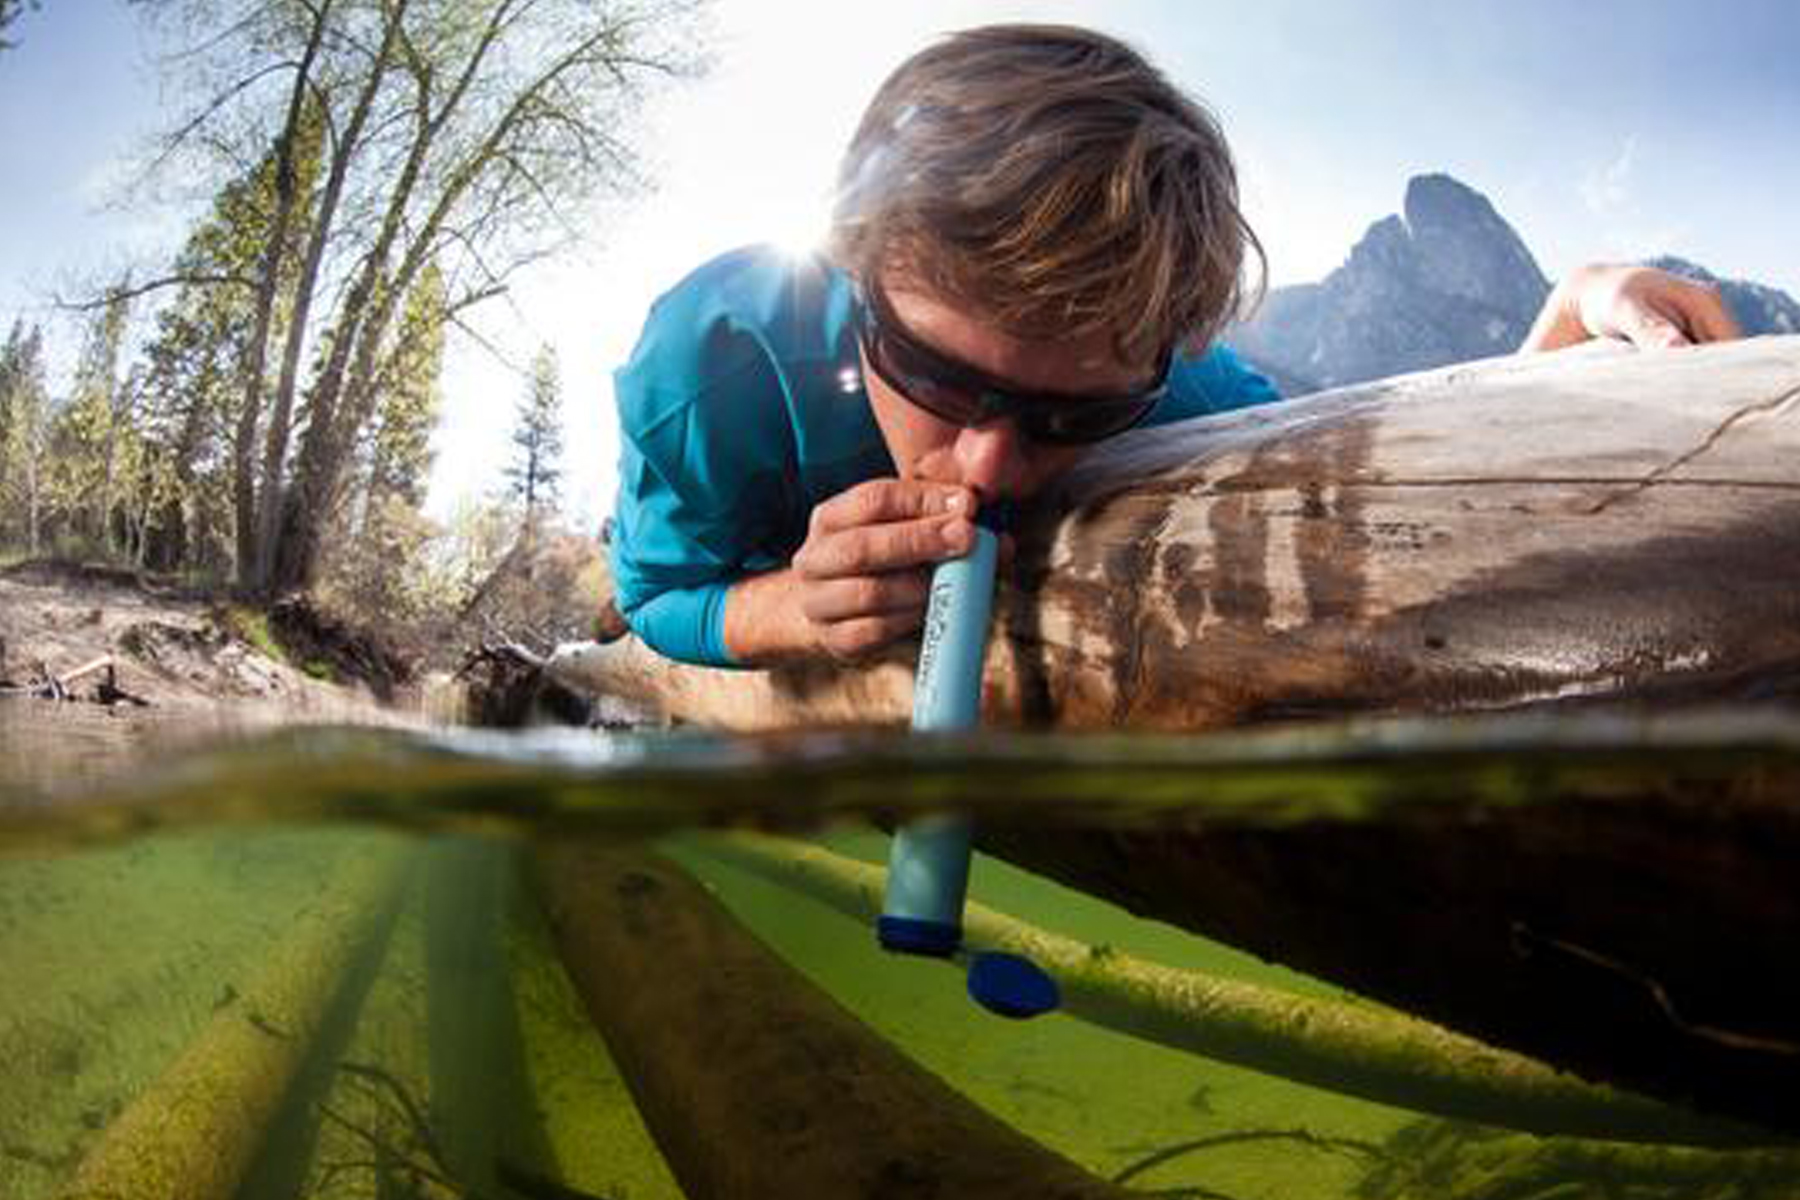 Man drinking from water with LifeStraw